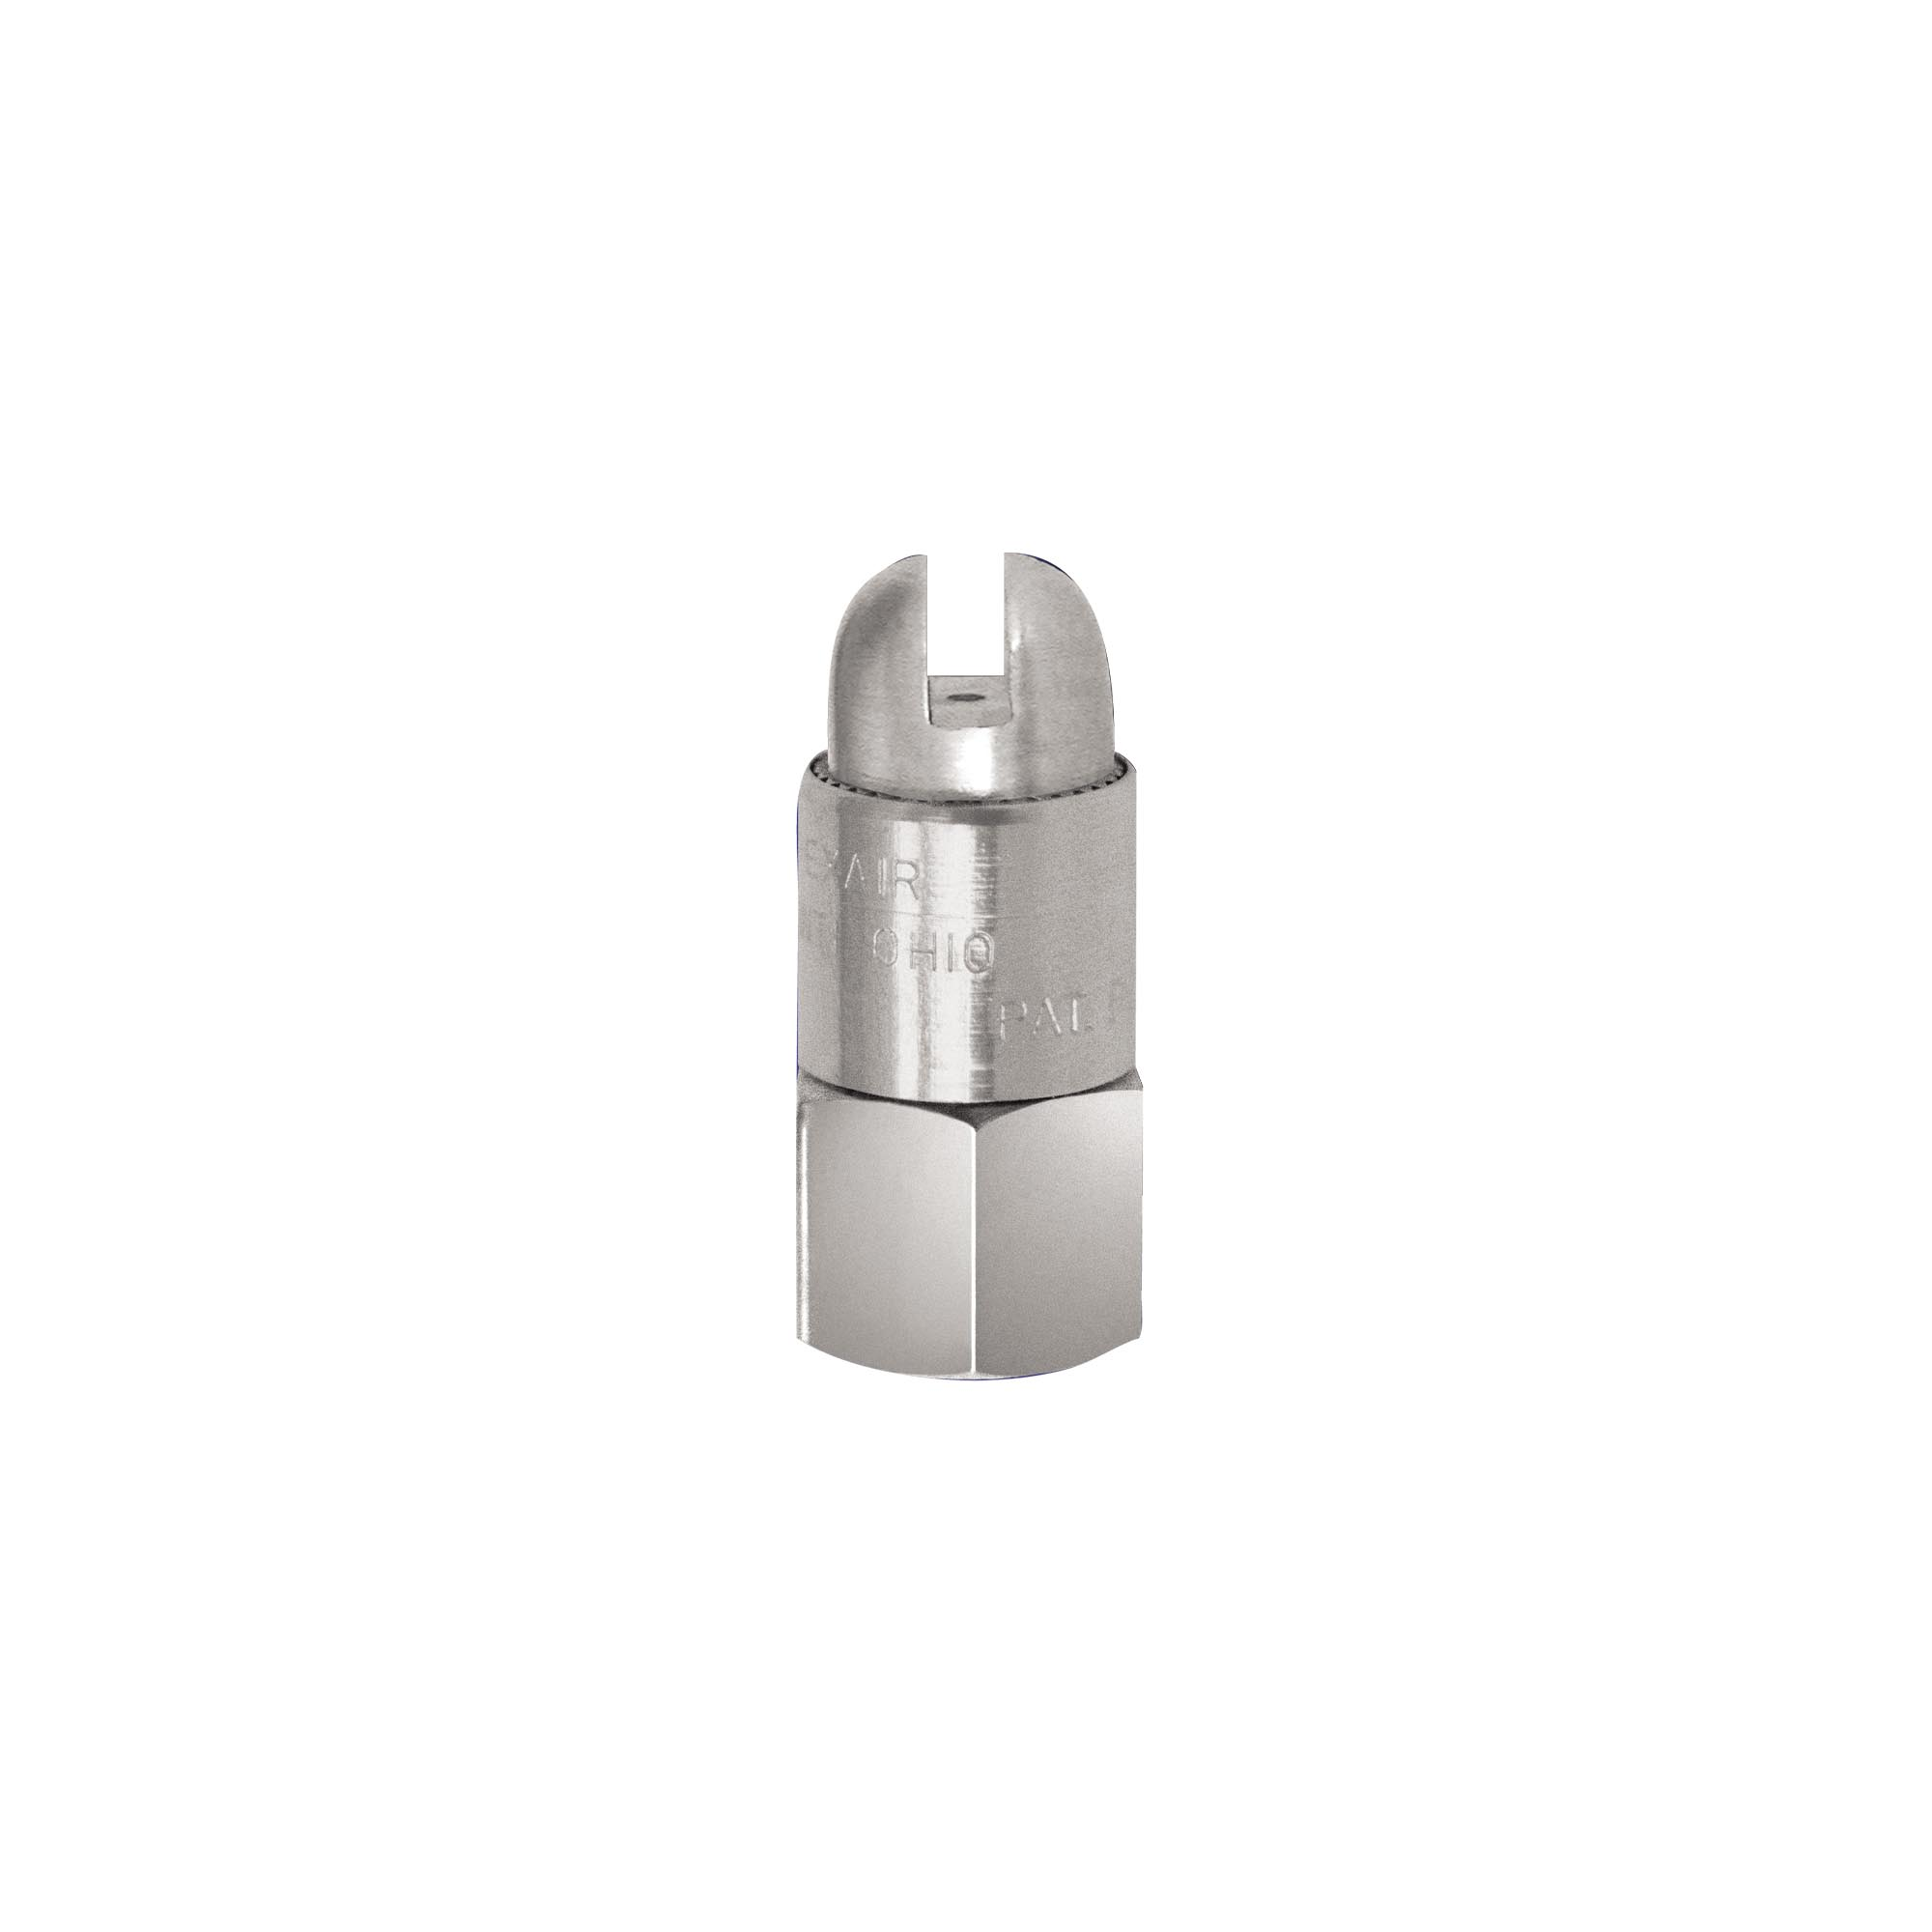 Type 303 Stainless Steel Safety Air Nozzle.